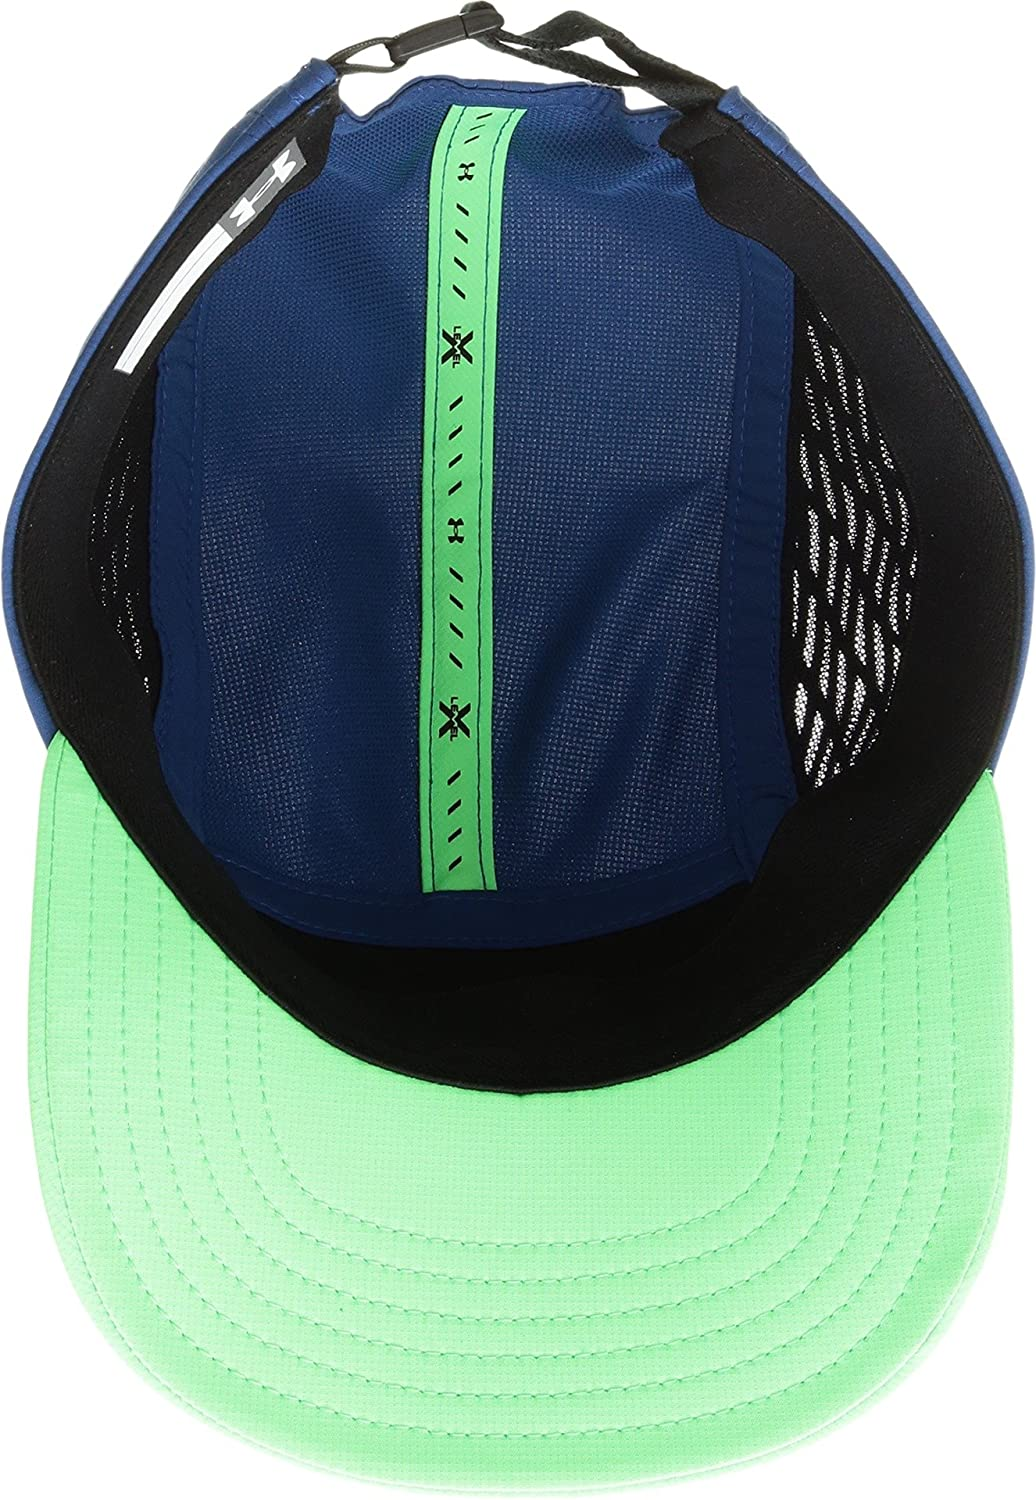 Under Armour Mens X-Level Duck Bill Cap Little Kids//Big Kids